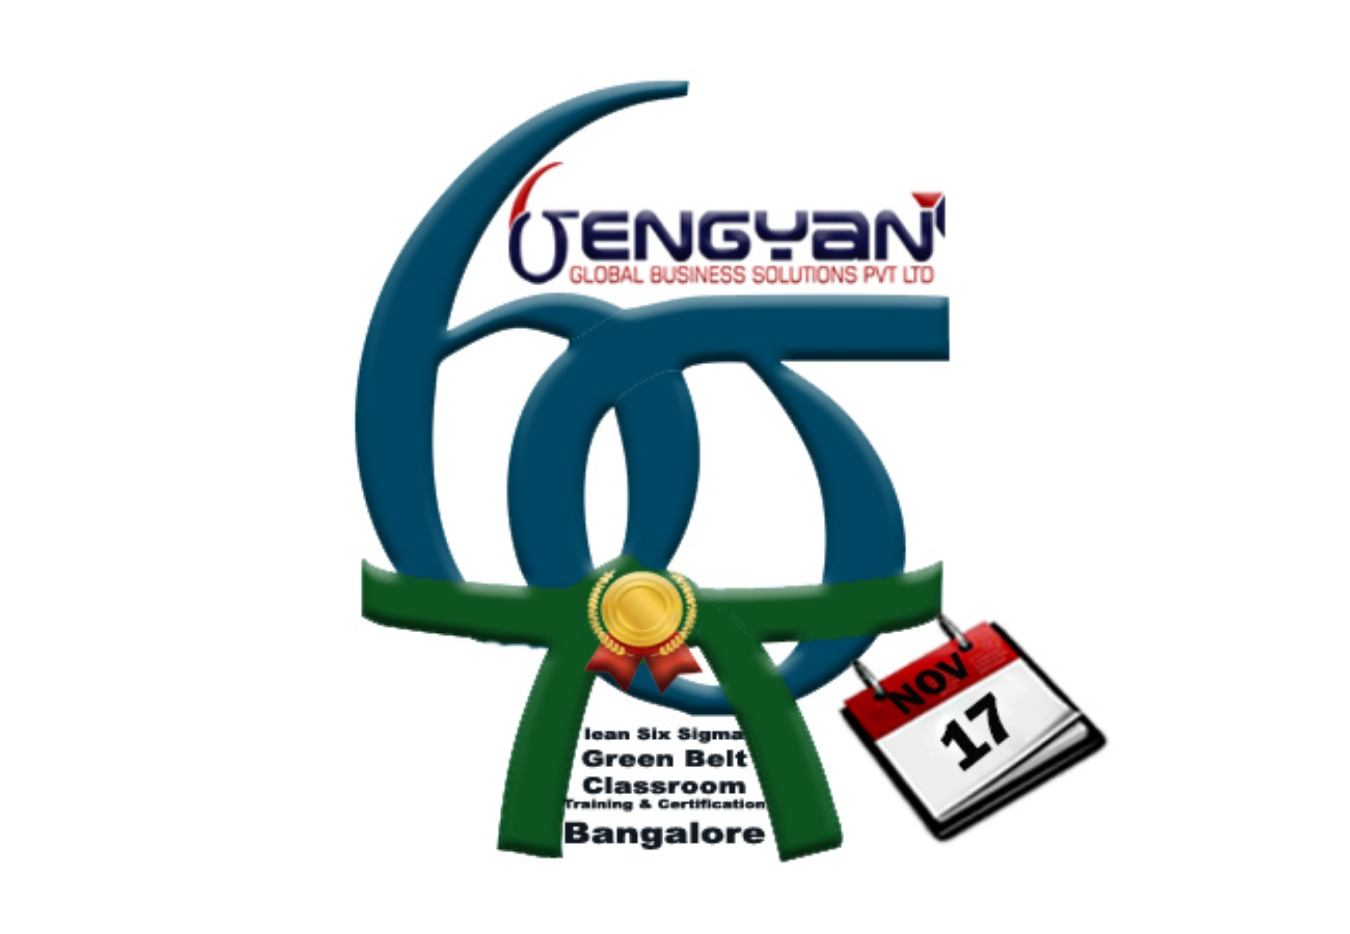 Lean Six Sigma Green Belt Classroom Training Bangalore Tickets By